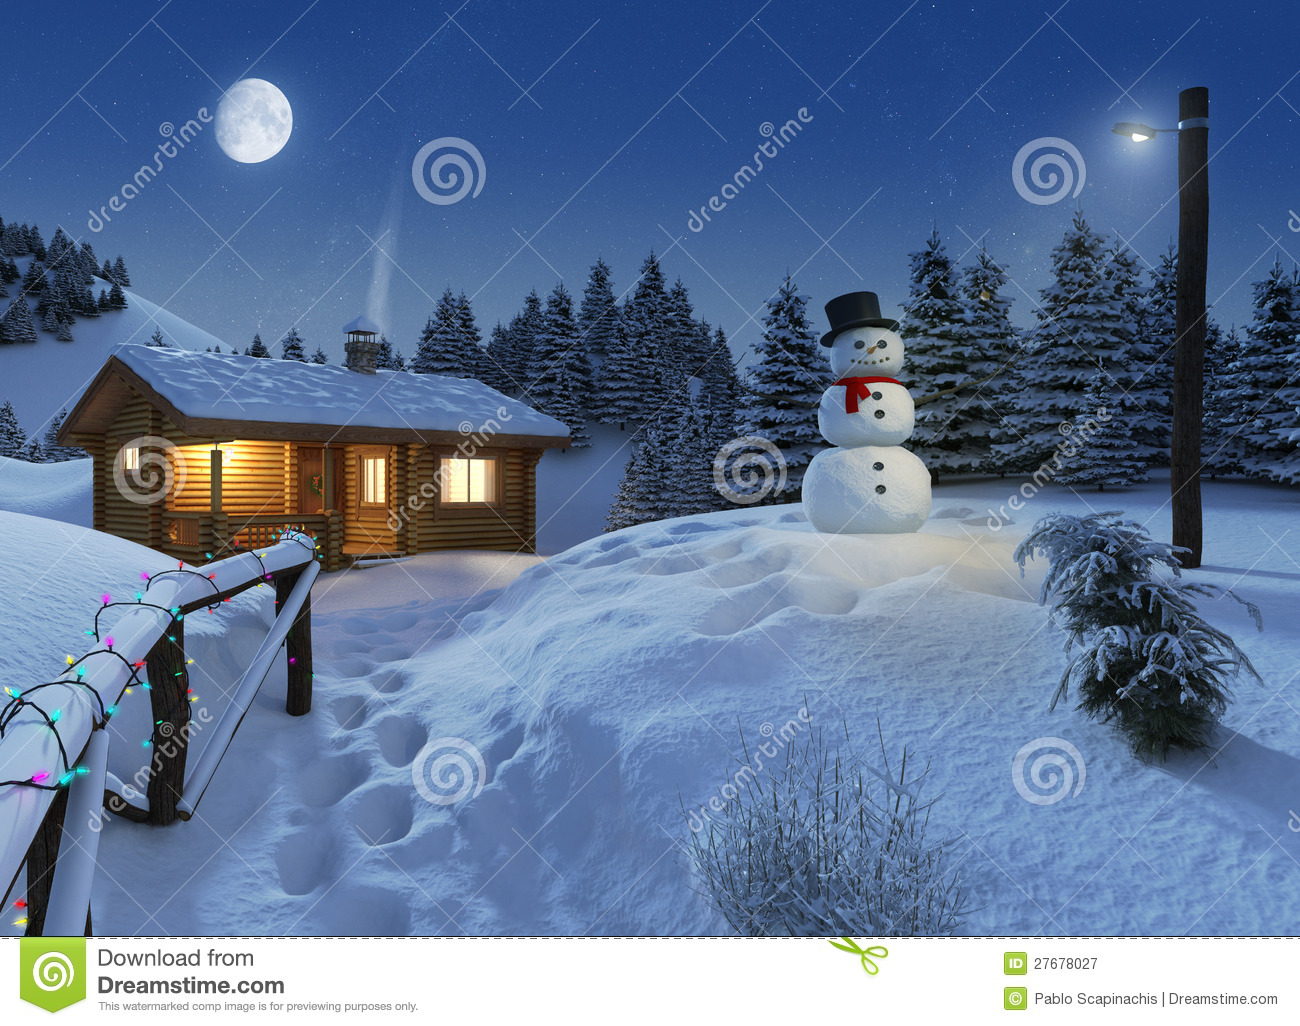 3d Snowy Cottage Animated Wallpaper Free Download Log House In A Winter Christmas Scene Stock Illustration